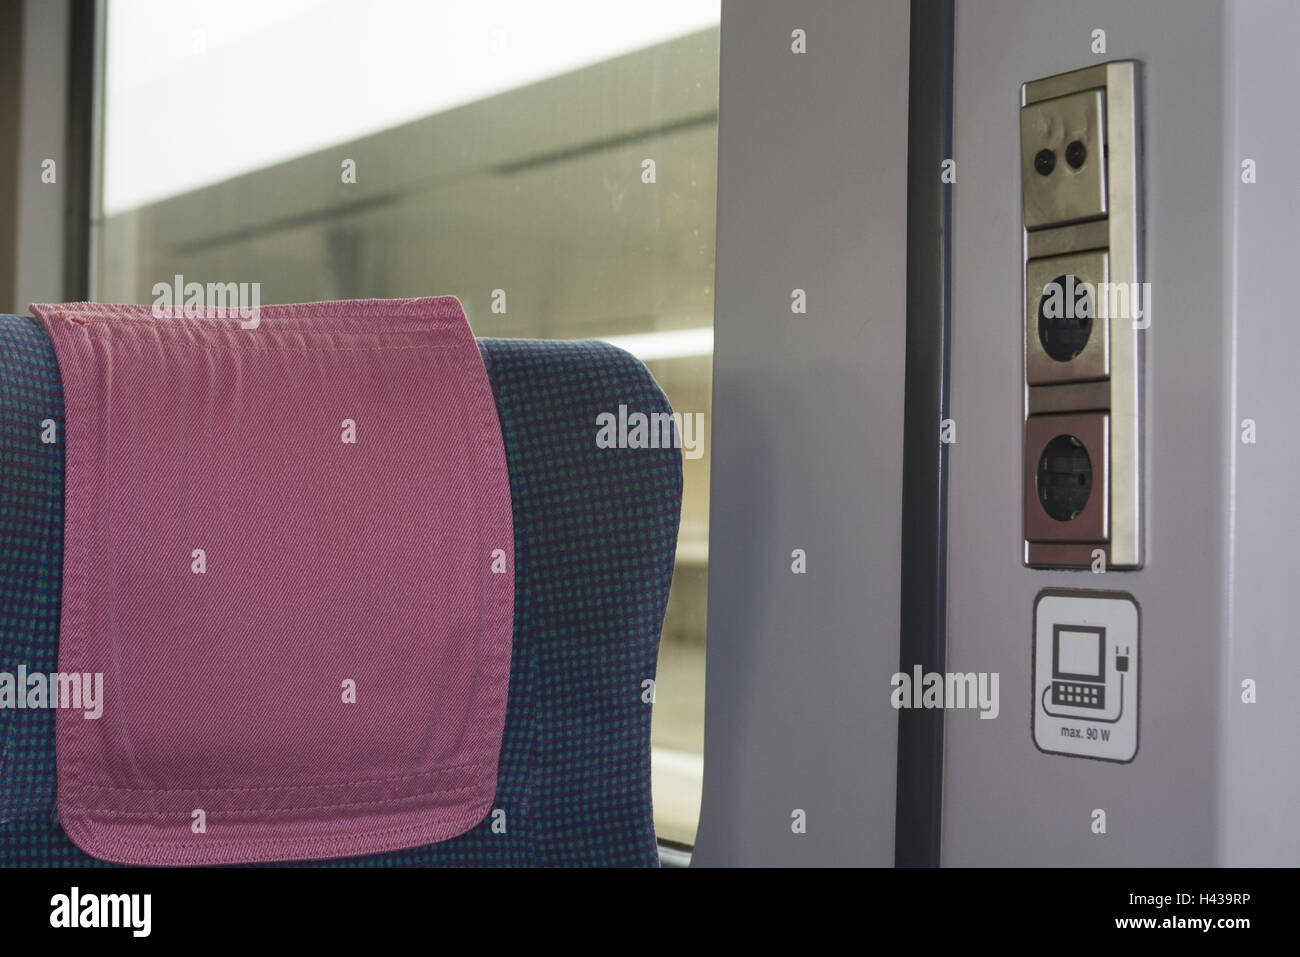 Train compartment, seat, sockets, nobody, trajectory carriage, train, compartment, inside, pillows, connections, Stock Photo